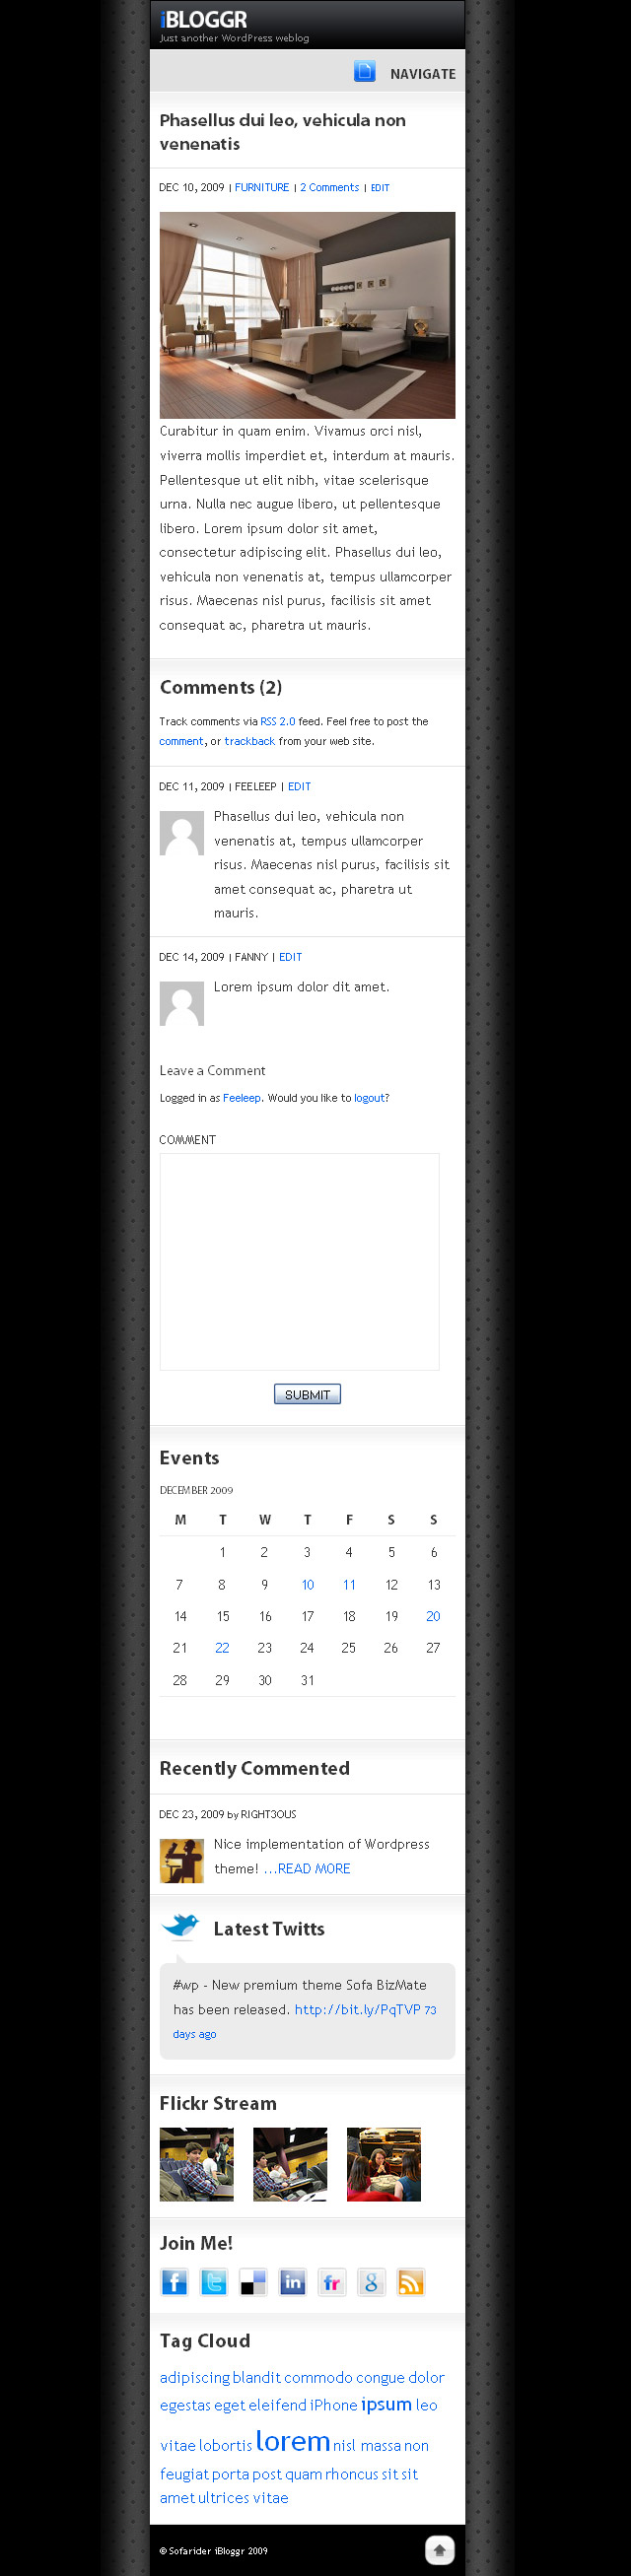 SOFA iBloggr - WordPress iPhone theme - Post details page screenshot for iBloggr (iPhone) WordPress theme.